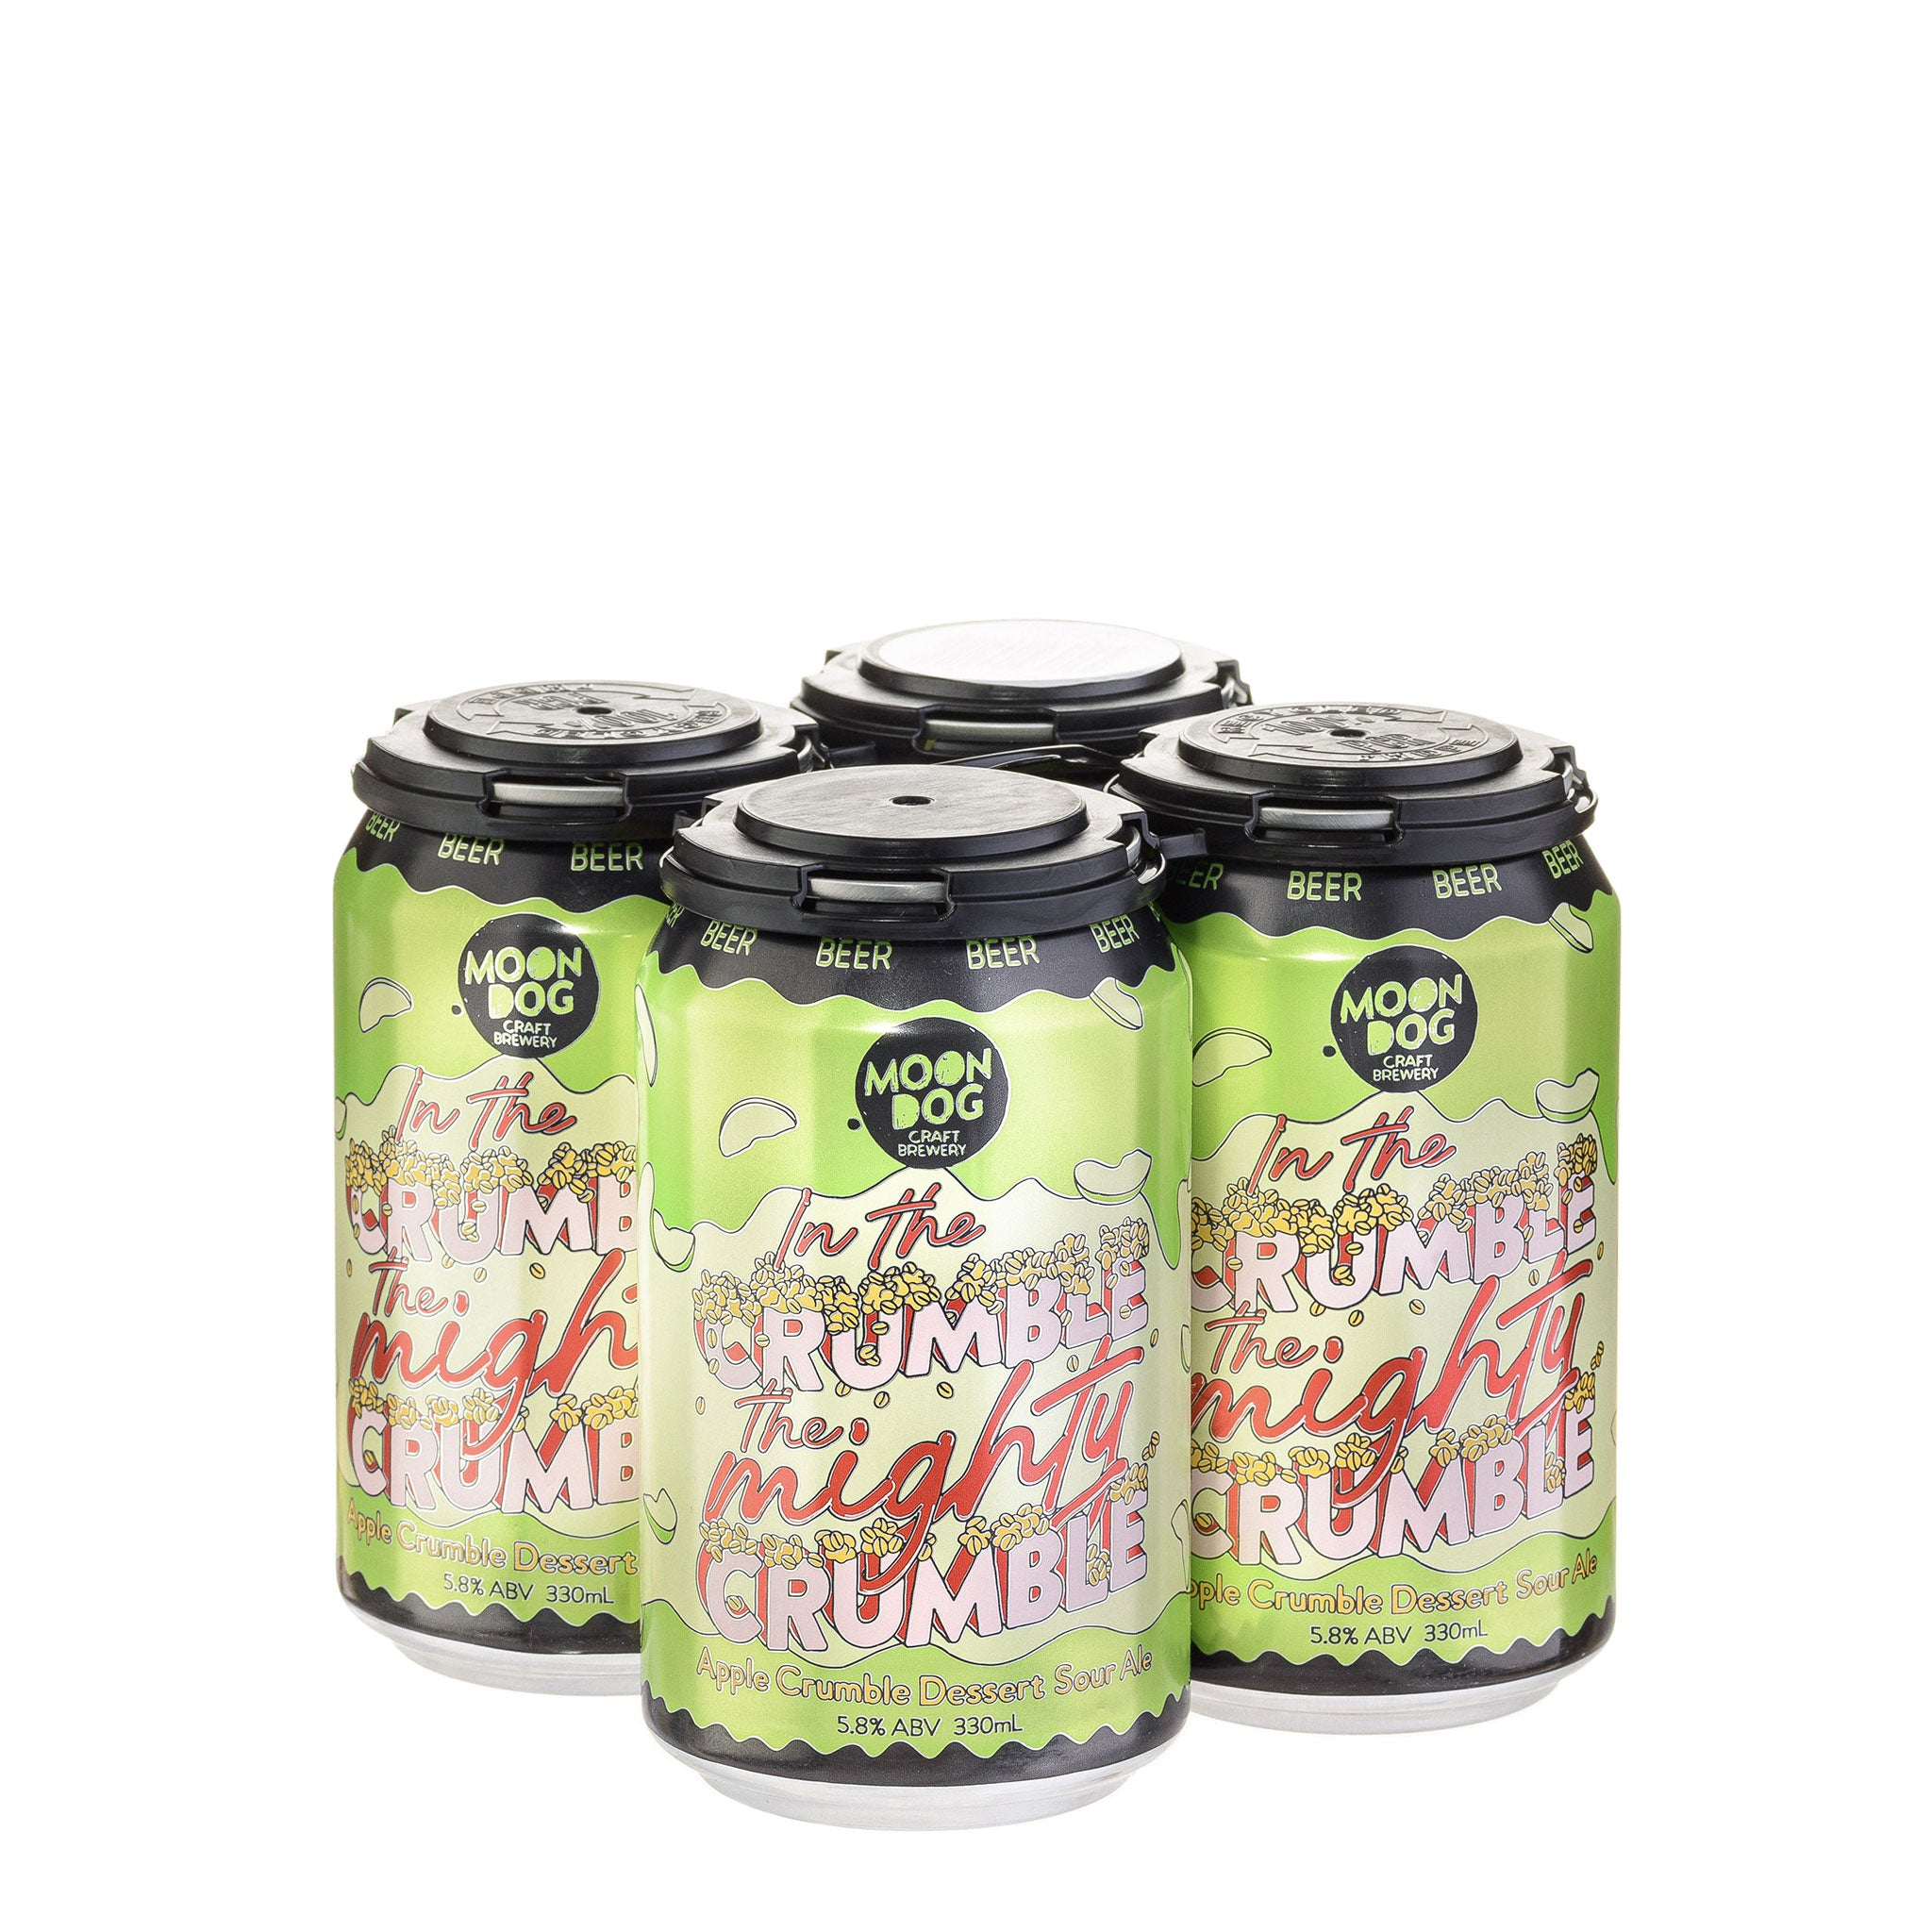 In the Crumble the Mighty Crumble Apple Crumble Dessert Sour Ale 330ml Cans - 4/24 Pack